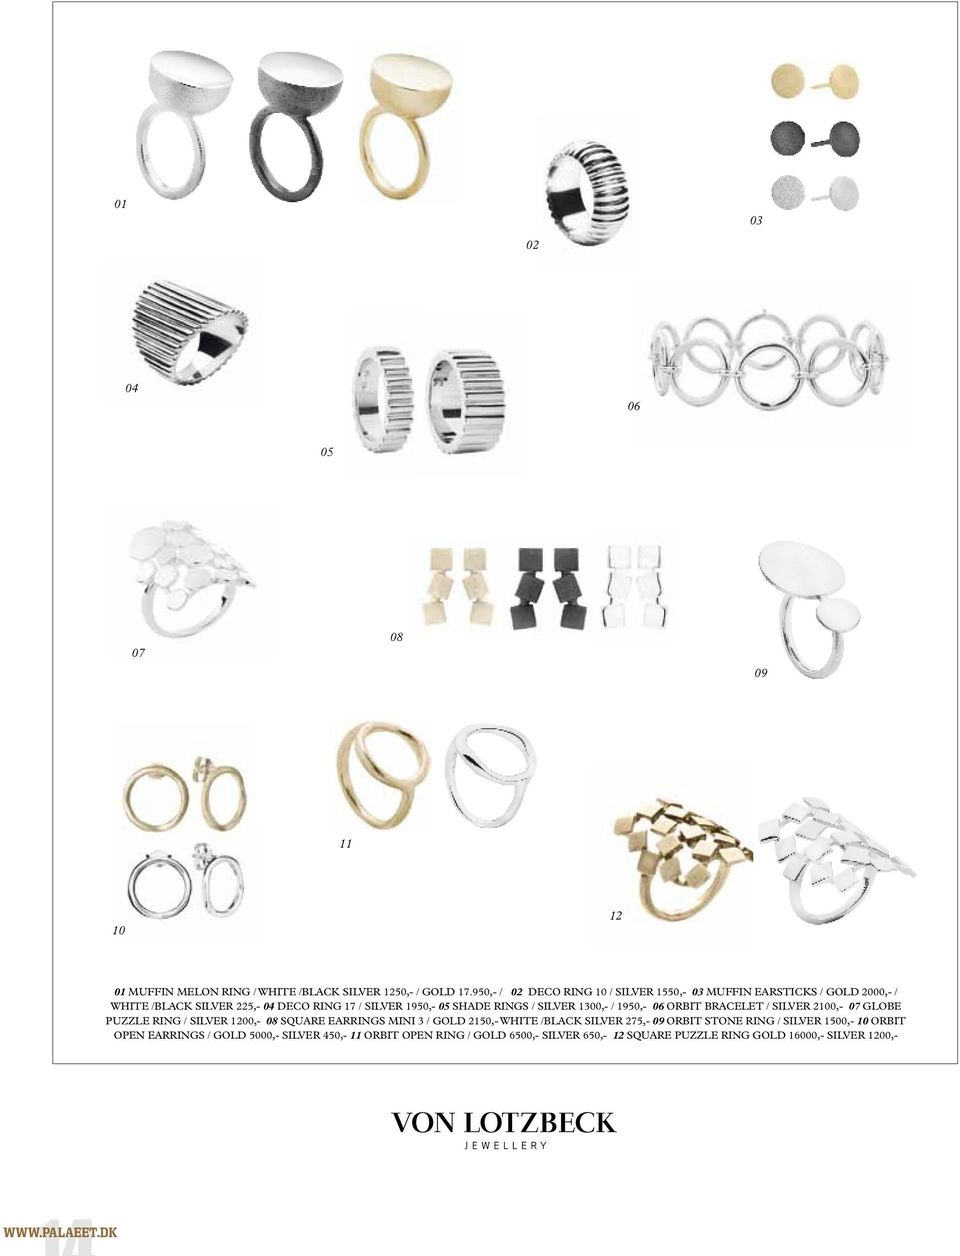 1300,- / 1950,- 06 ORBIT BRACELET / SILVER 2100,- 07 GLOBE PUZZLE RING / SILVER 1200,- 08 SQUARE EARRINGS MINI 3 / GOLD 2150,- WHITE /BLACK SILVER 275,- 09